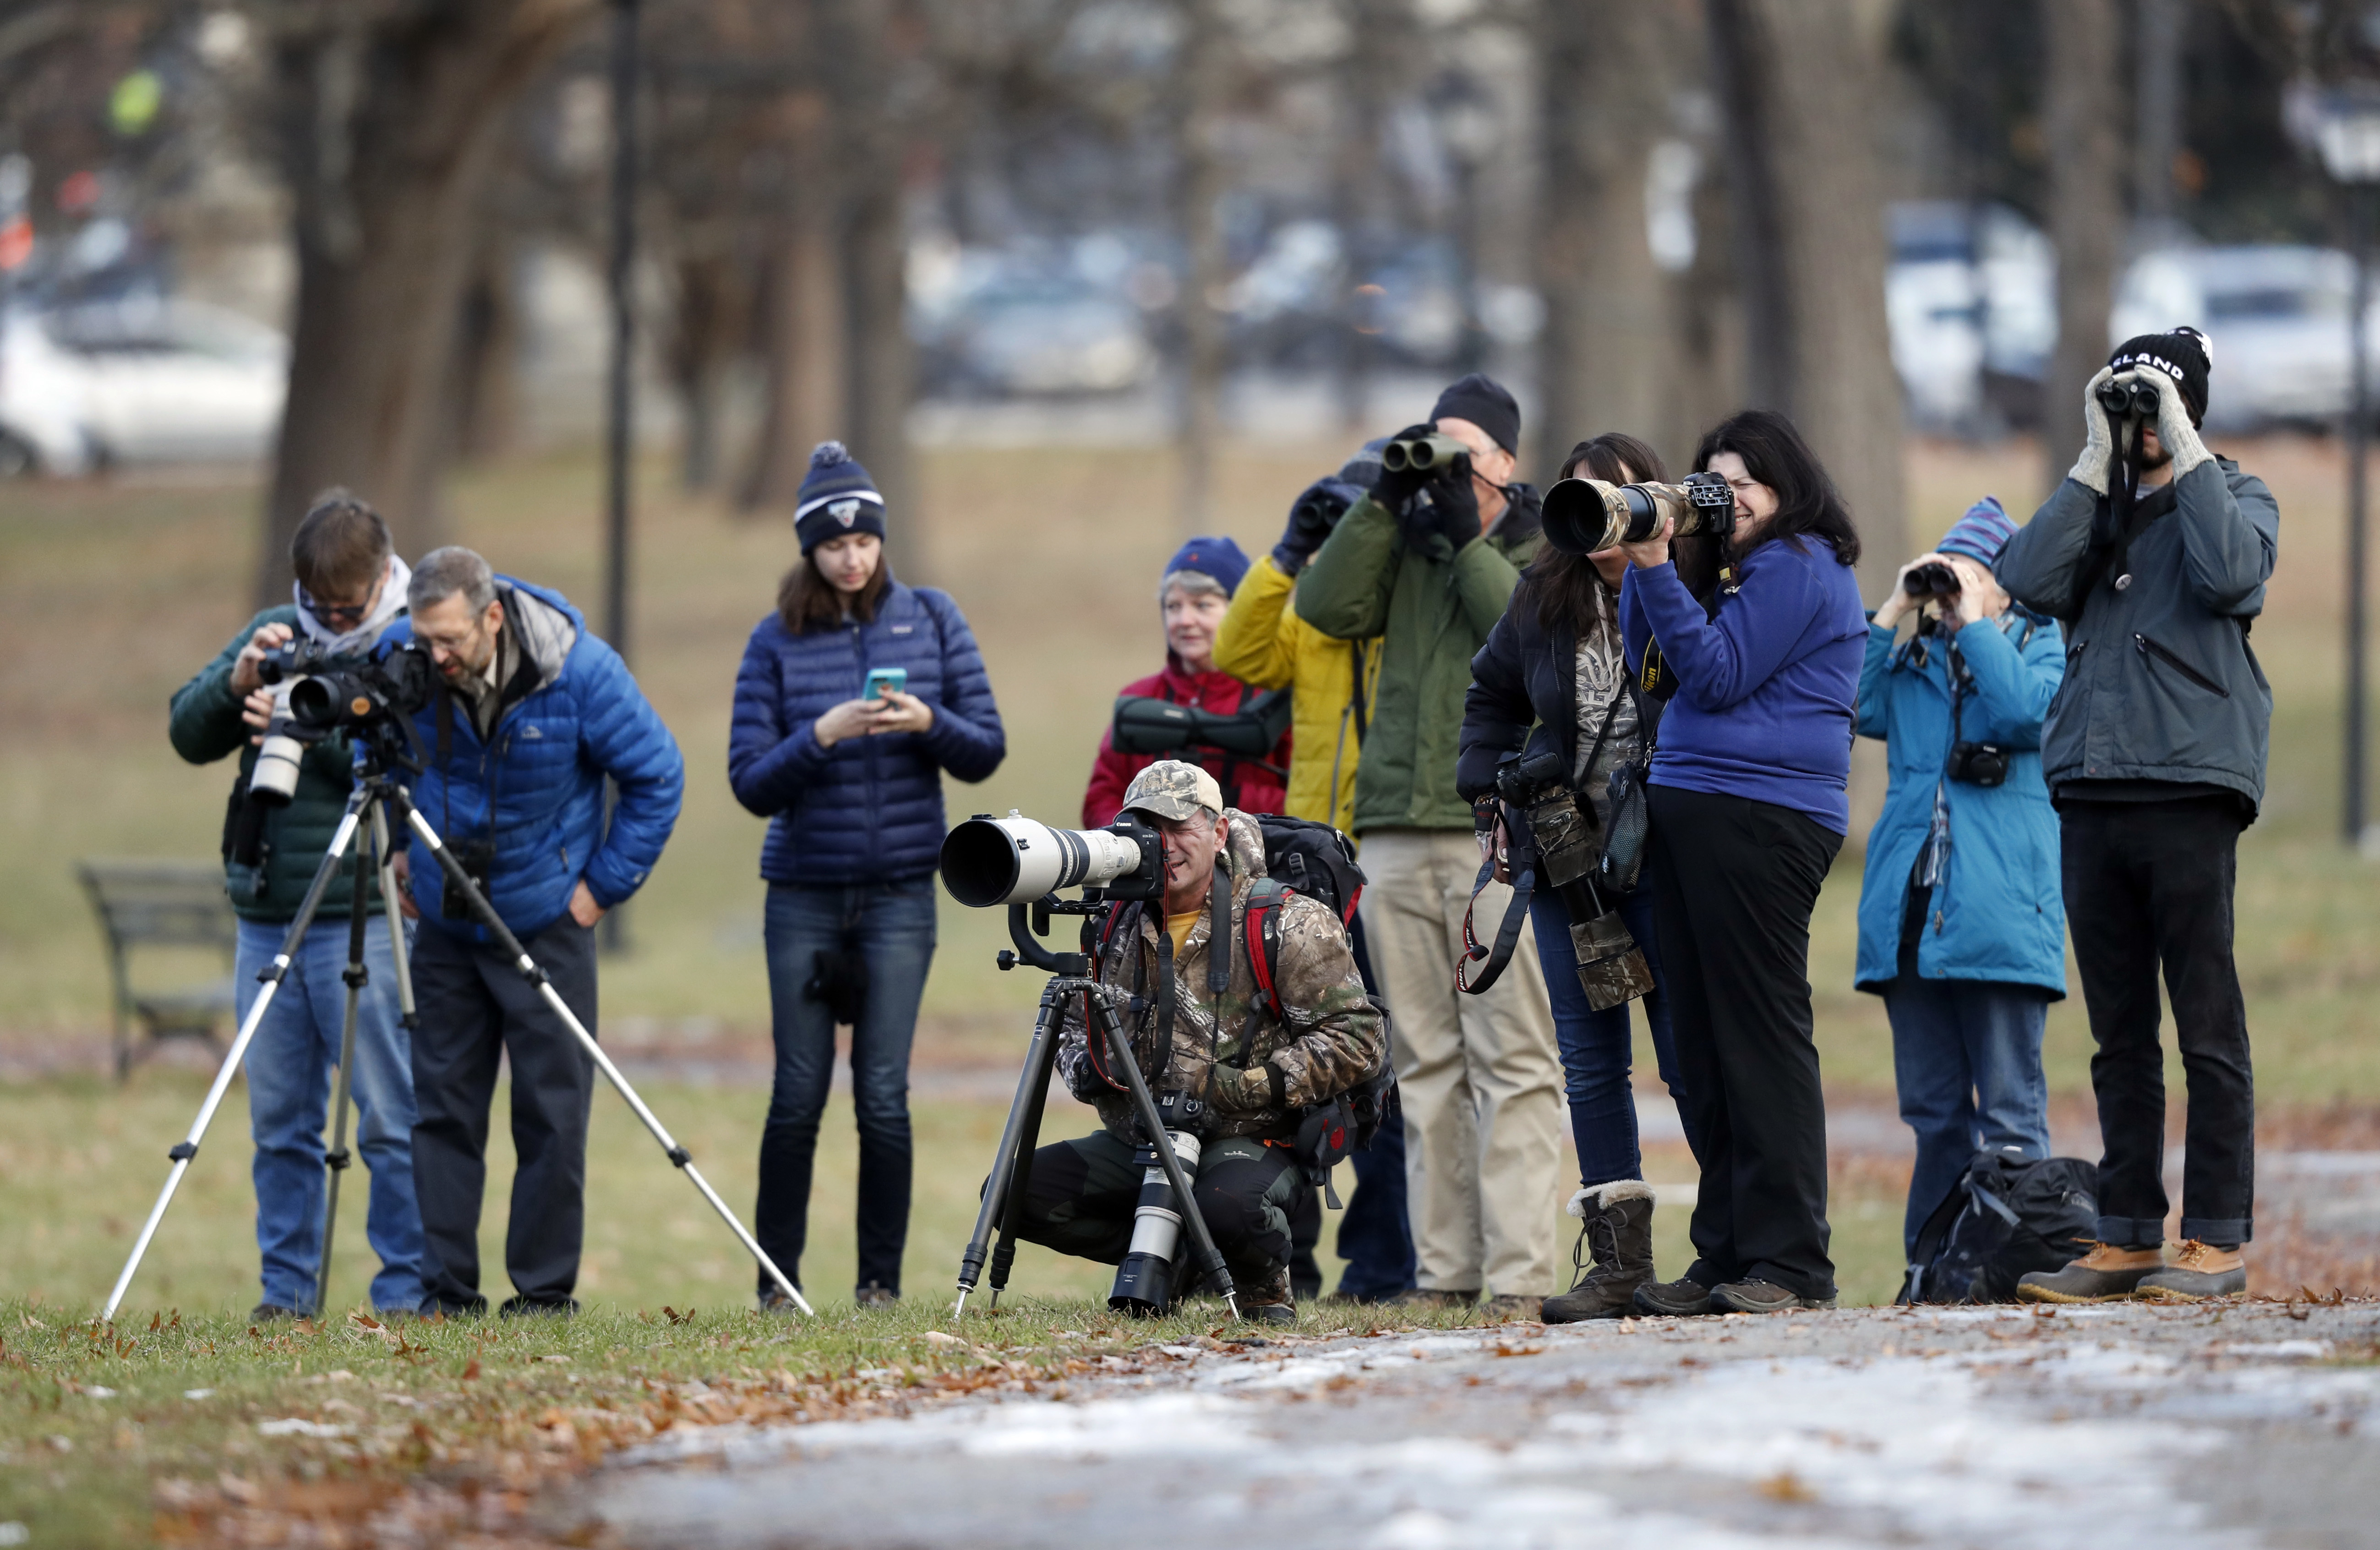 Birders watch and photograph a great black hawk at Deering Oaks Park, Friday, Nov. 30, 2018, in Portland, Maine. Audubon has called it potentially the first record of the species in the U.S. (AP Photo/Robert F. Bukaty)